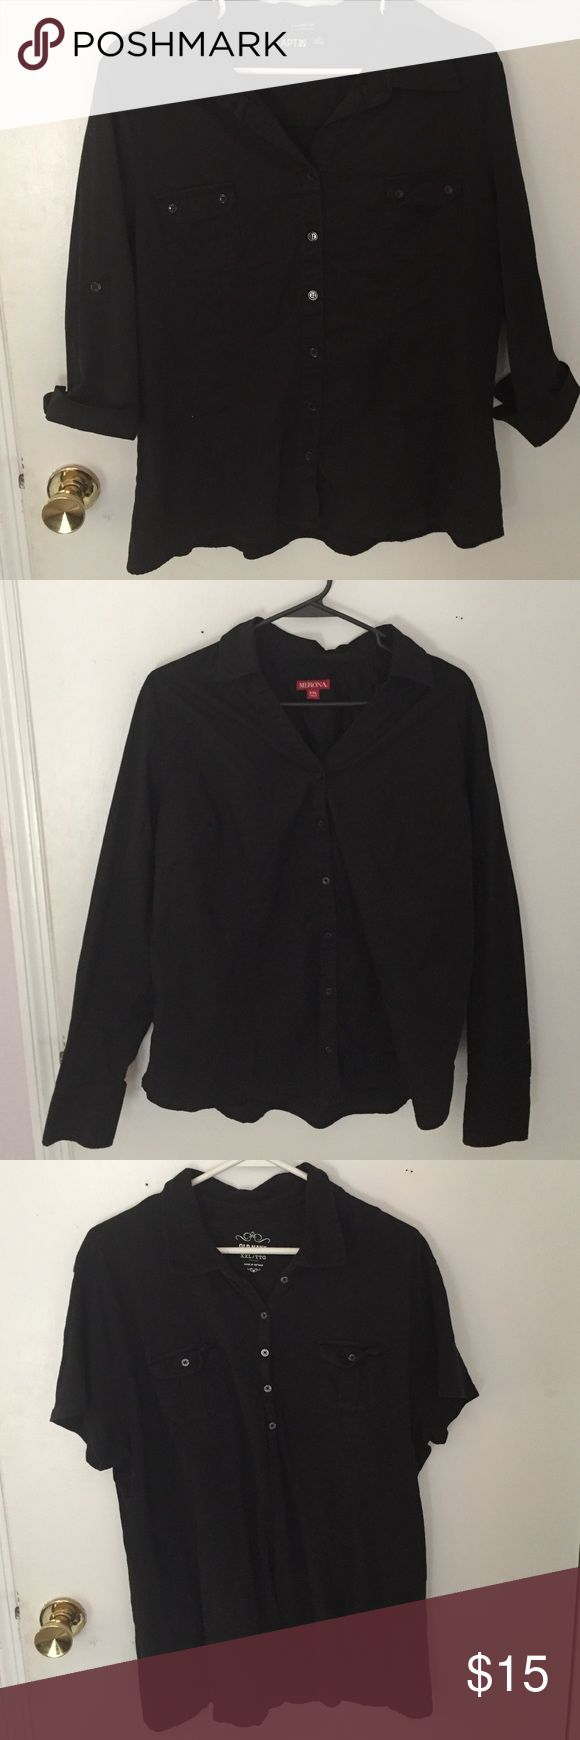 3 piece bundle of women black shirts 🔹#1 black shirt is essential Apt 9 brand size XL🔹#2 black long sleeve shirt size XXL (fits like XL) is Merona brand🔹#3 shirt is size XXL (fits like XL) and is short sleeve Old Navy Brand🔹 perfect for people in any employment that requires a black shirt🔹excellent used condition old navy, merona,Apt 9 Tops Button Down Shirts